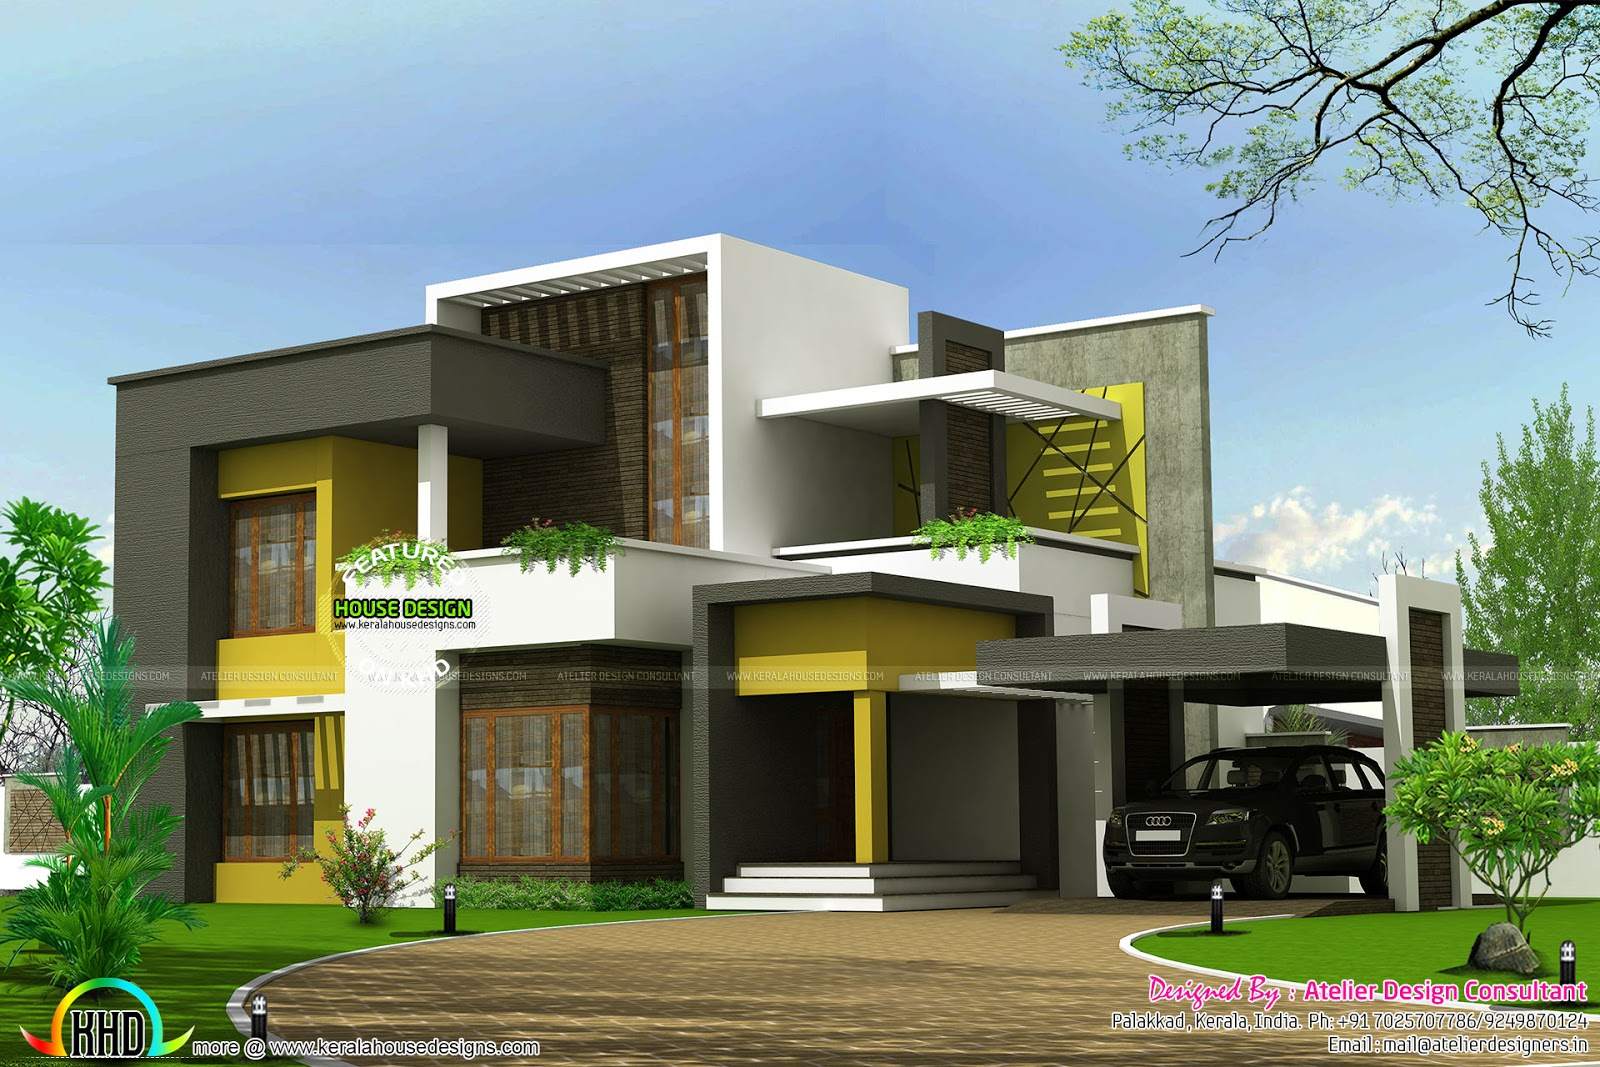 House details ground floor feet flat roof contemporary Types of modern houses